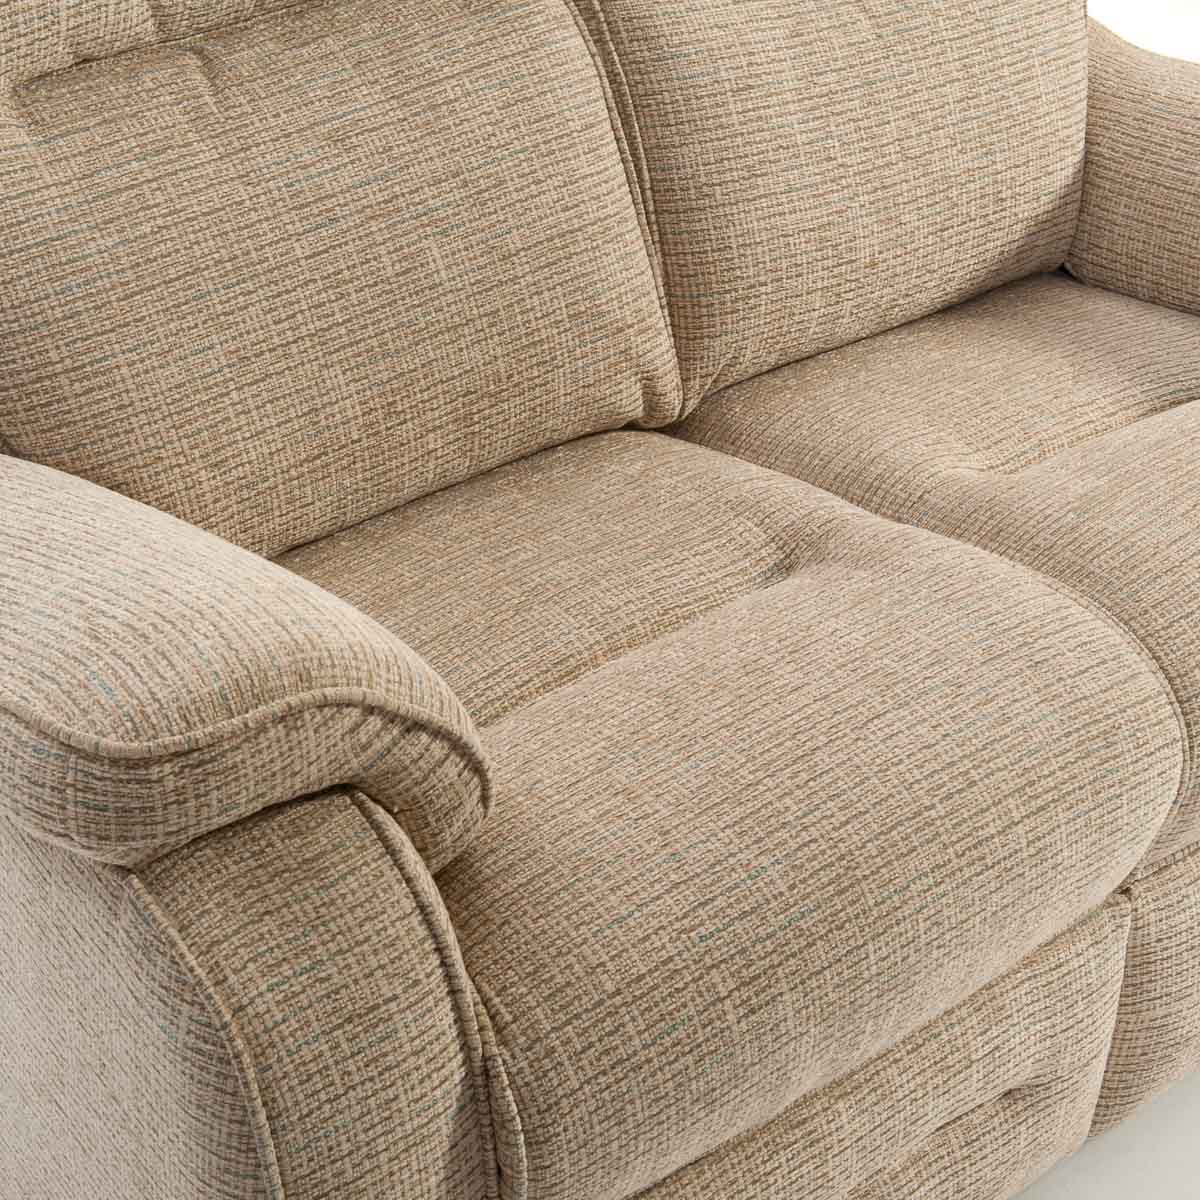 Parker Knoll Boston 2 Seater